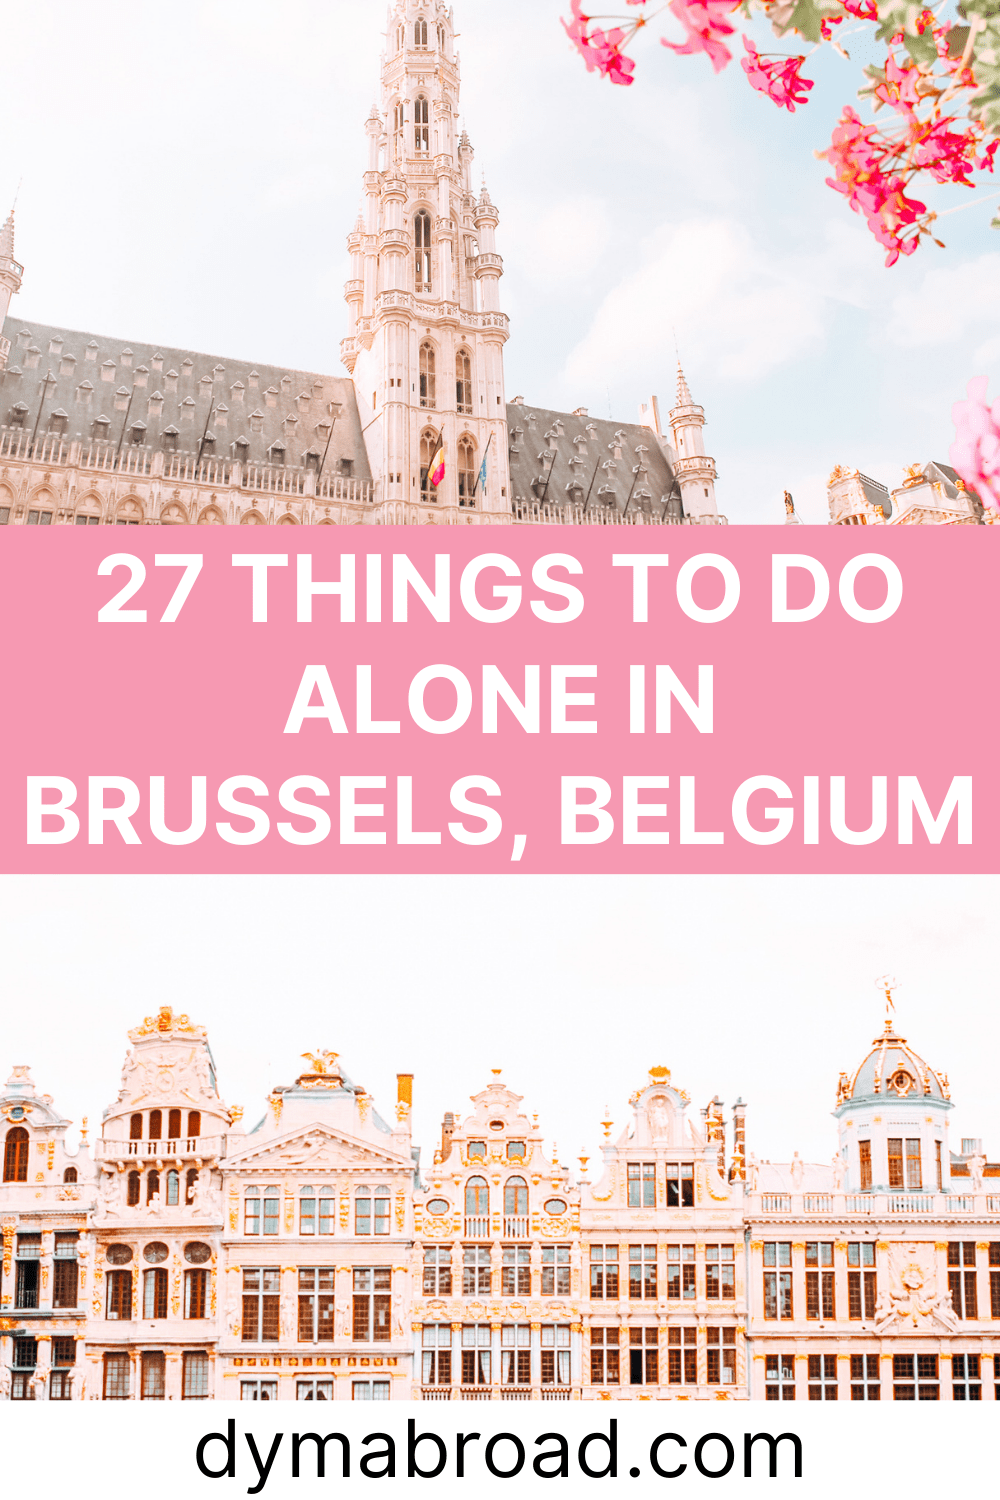 Things to do alone in Brussels Pinterest image